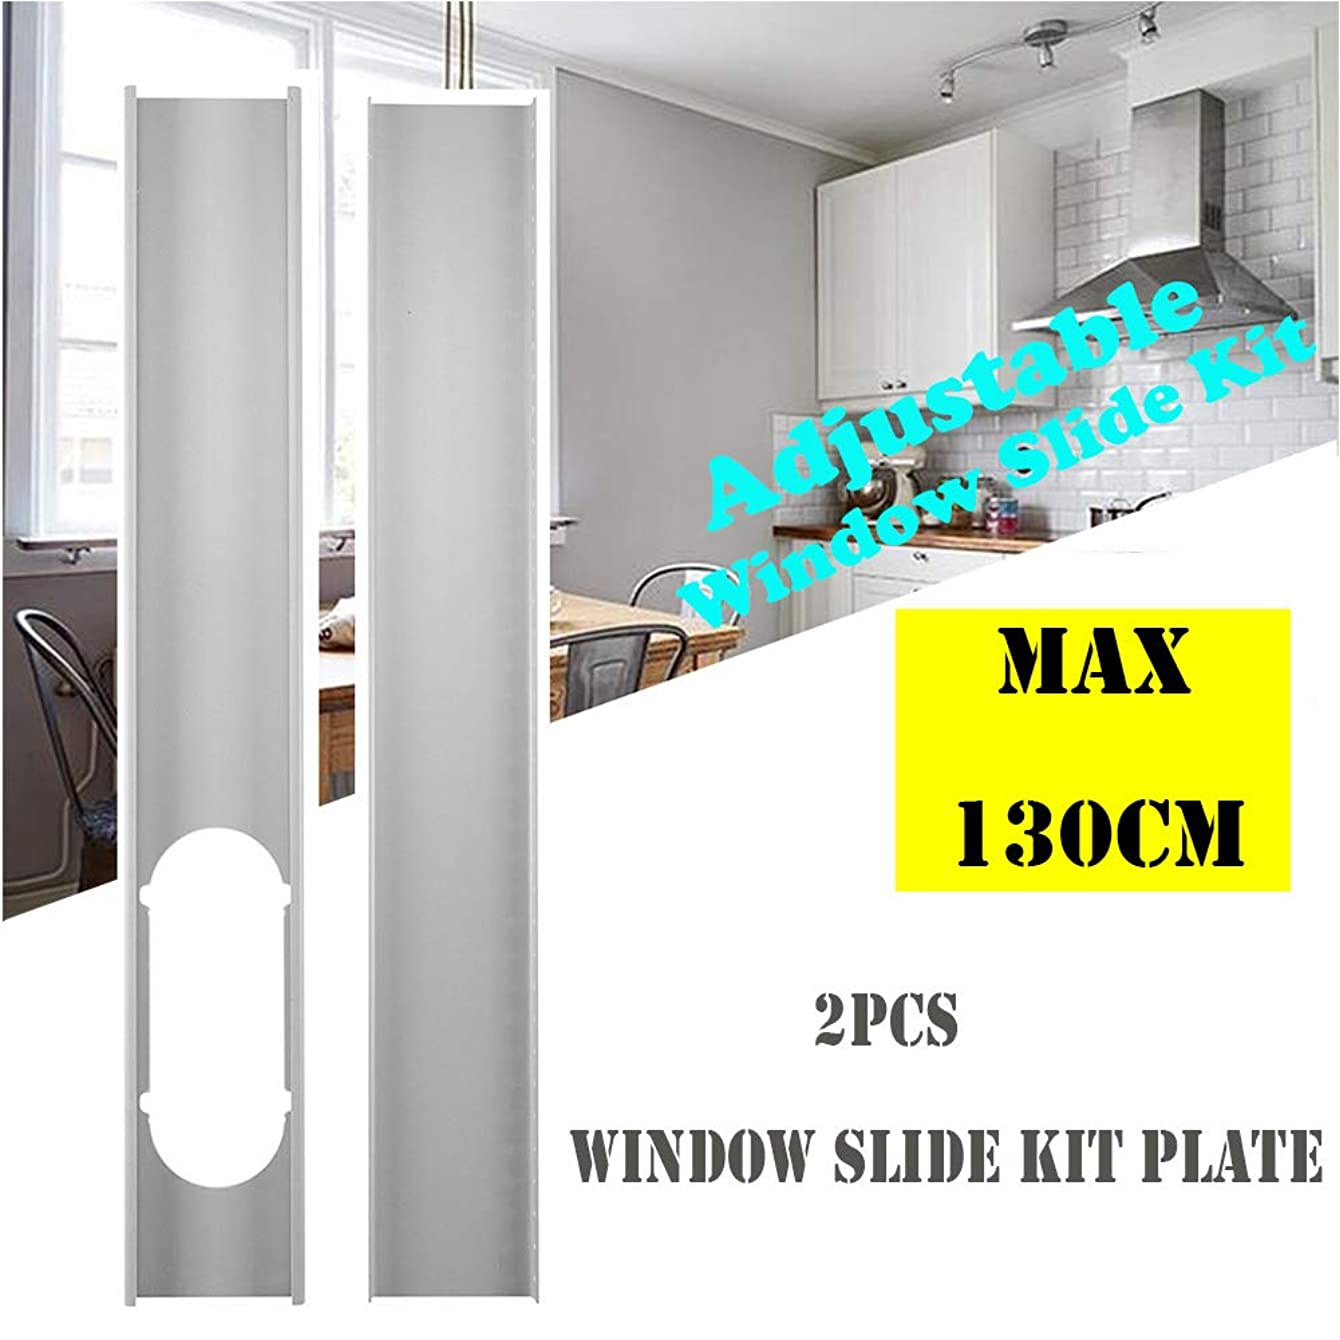 2Pcs Window Slide Kit Plate or 1 pcs 6inch Window Adapter for Portable Air Conditioner-Window Slide Kit Plate